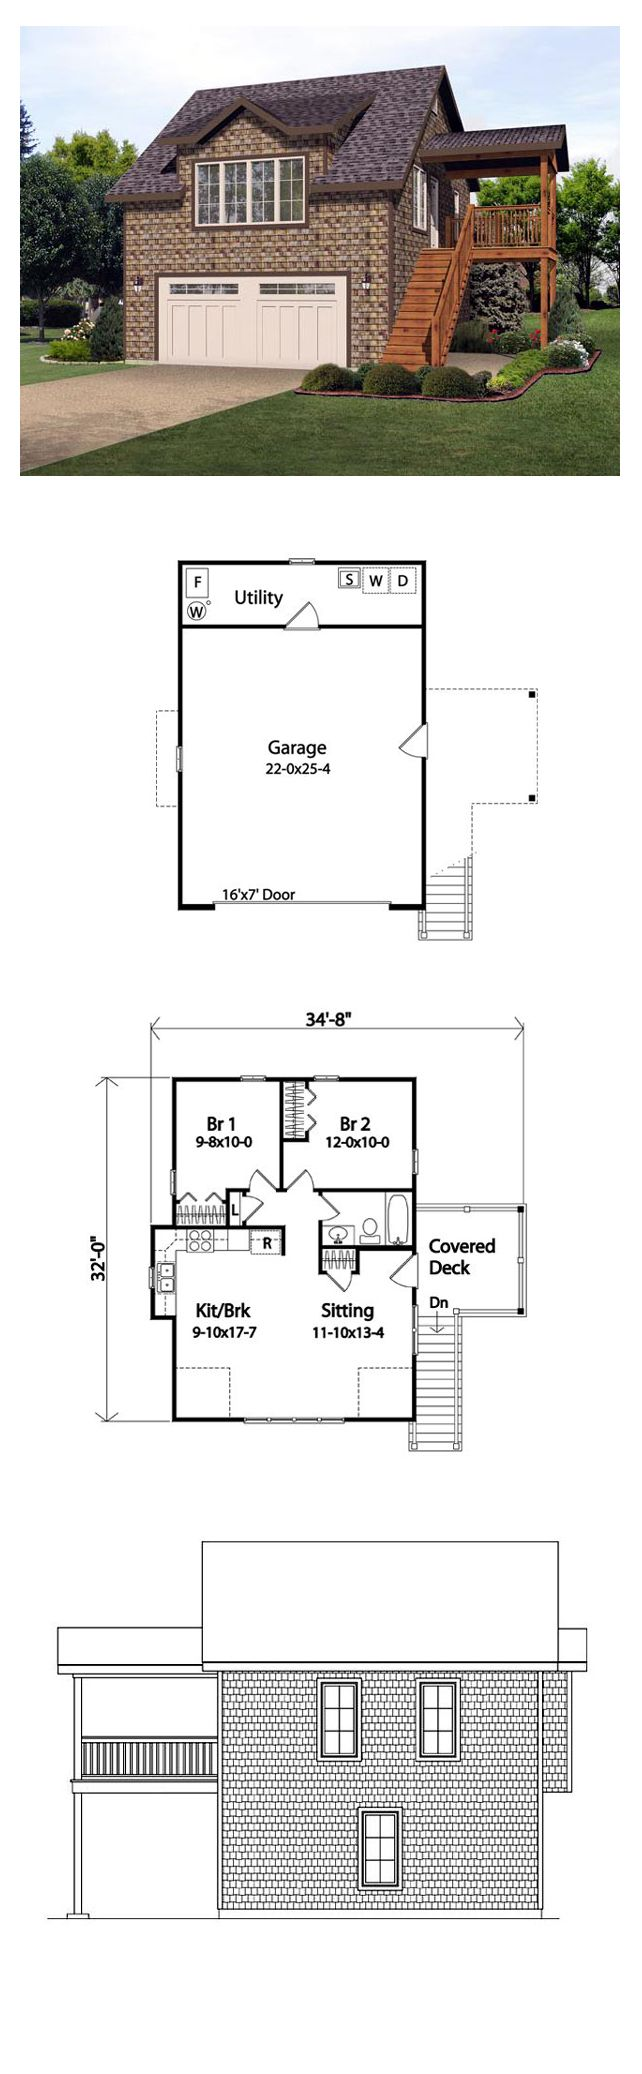 Garage Plan 45121 371 best Floor Plans